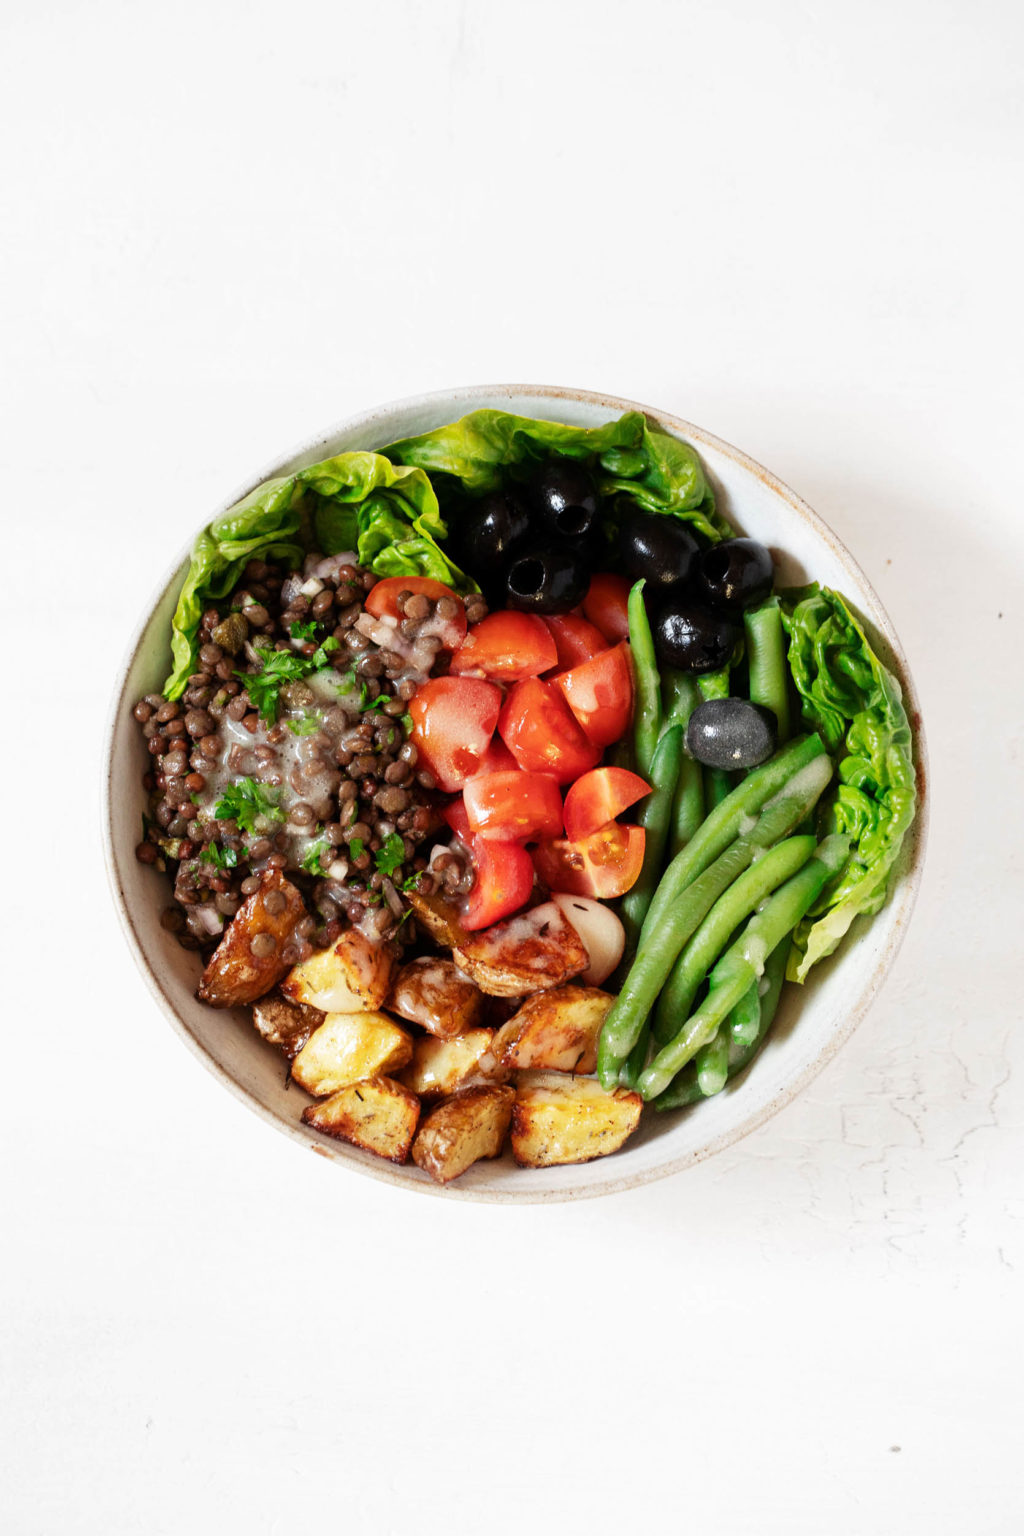 An overhead photograph of a composed salad, which has been made with an array of colorful plant-based ingredients.